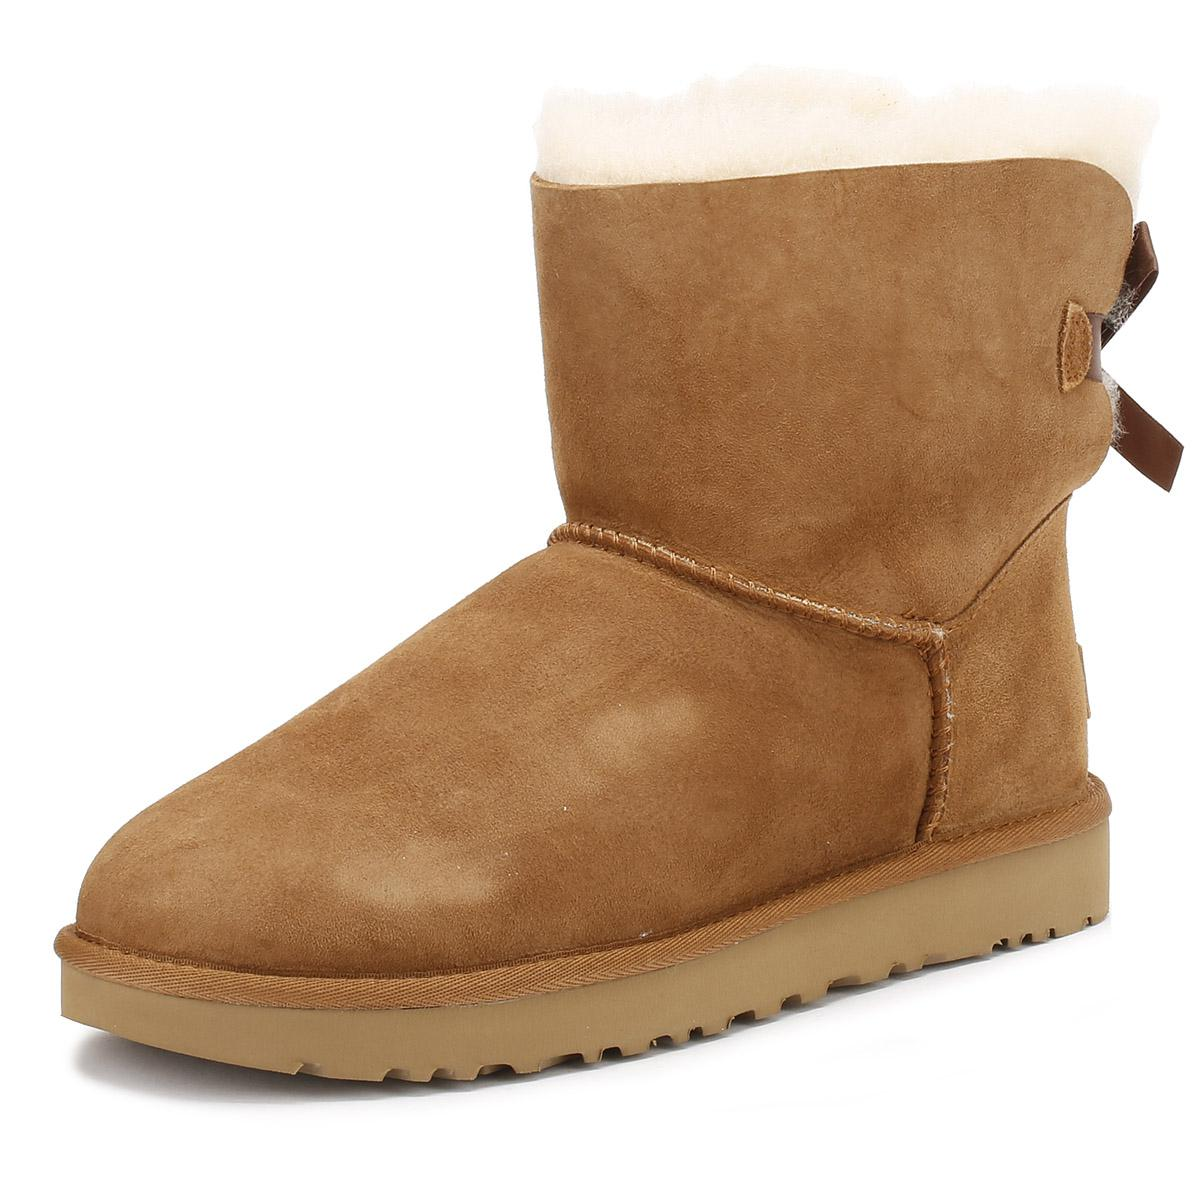 UGG UGG Womens Chestnut Brown Mini Bailey Bow Ii Boots in Brown - Lyst 1cb478a846c